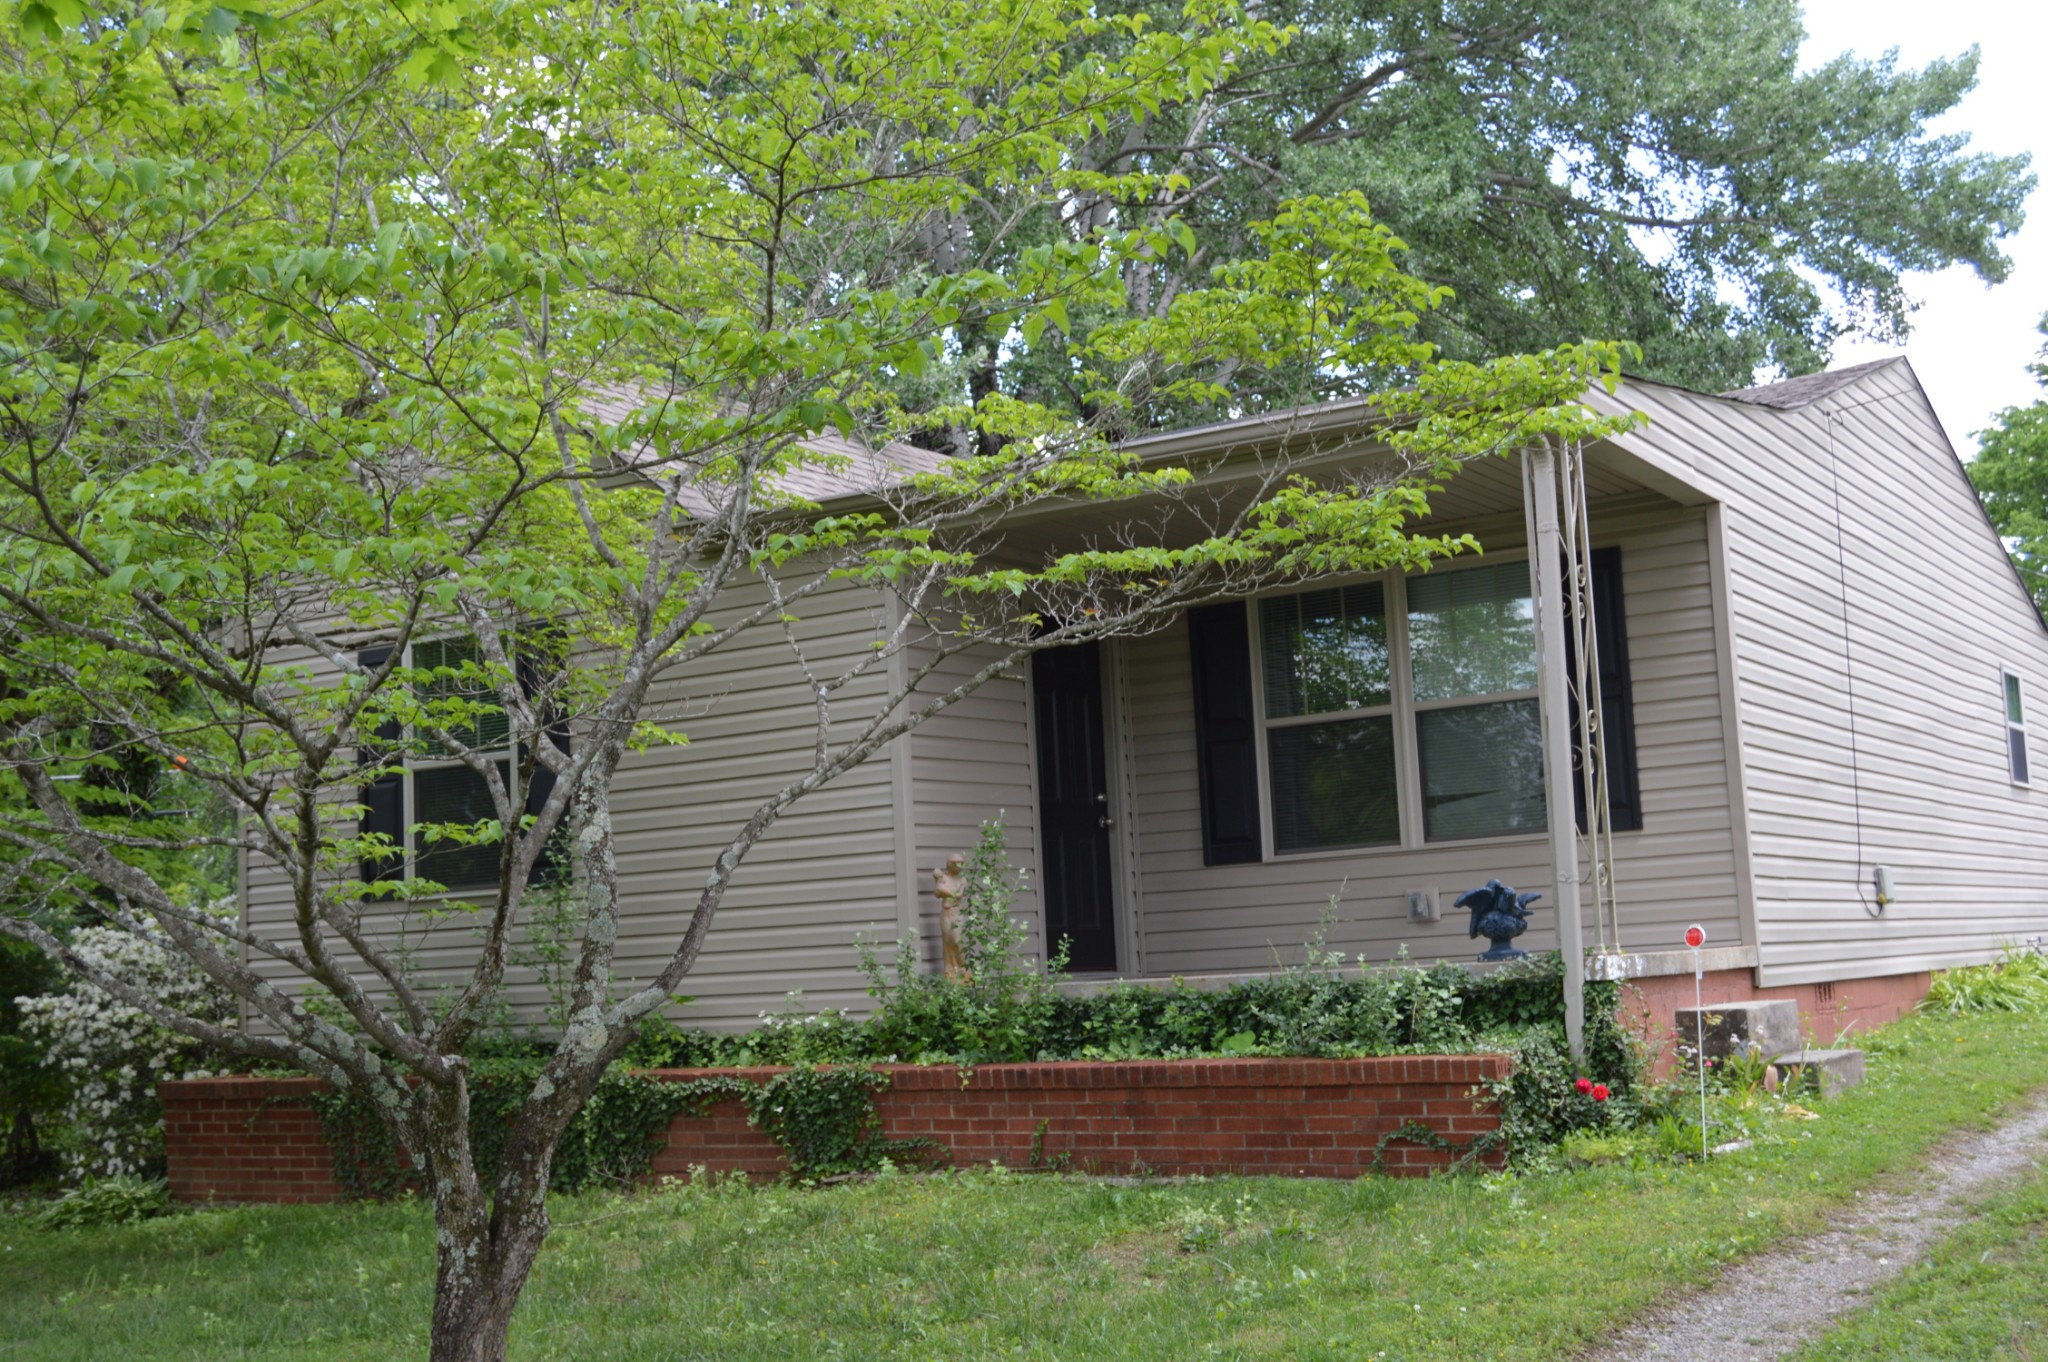 RENOVATED 2 BEDROOM - 1 BATH HOUSE ON DOUBLE LOT.  ZONED R-3. HOUSE WAS GUTTED IN 2015 WITH NEW WIRING, PLUMBING, SHEETROCK, INSULATION, HVAC, WINDOWS, SIDING, ETC.  FLOORS ARE HARDWOOD. BOTH FRONT AND REAR DRIVEWAY ENTRANCES. MATURE TREES ON SIDE LOT.